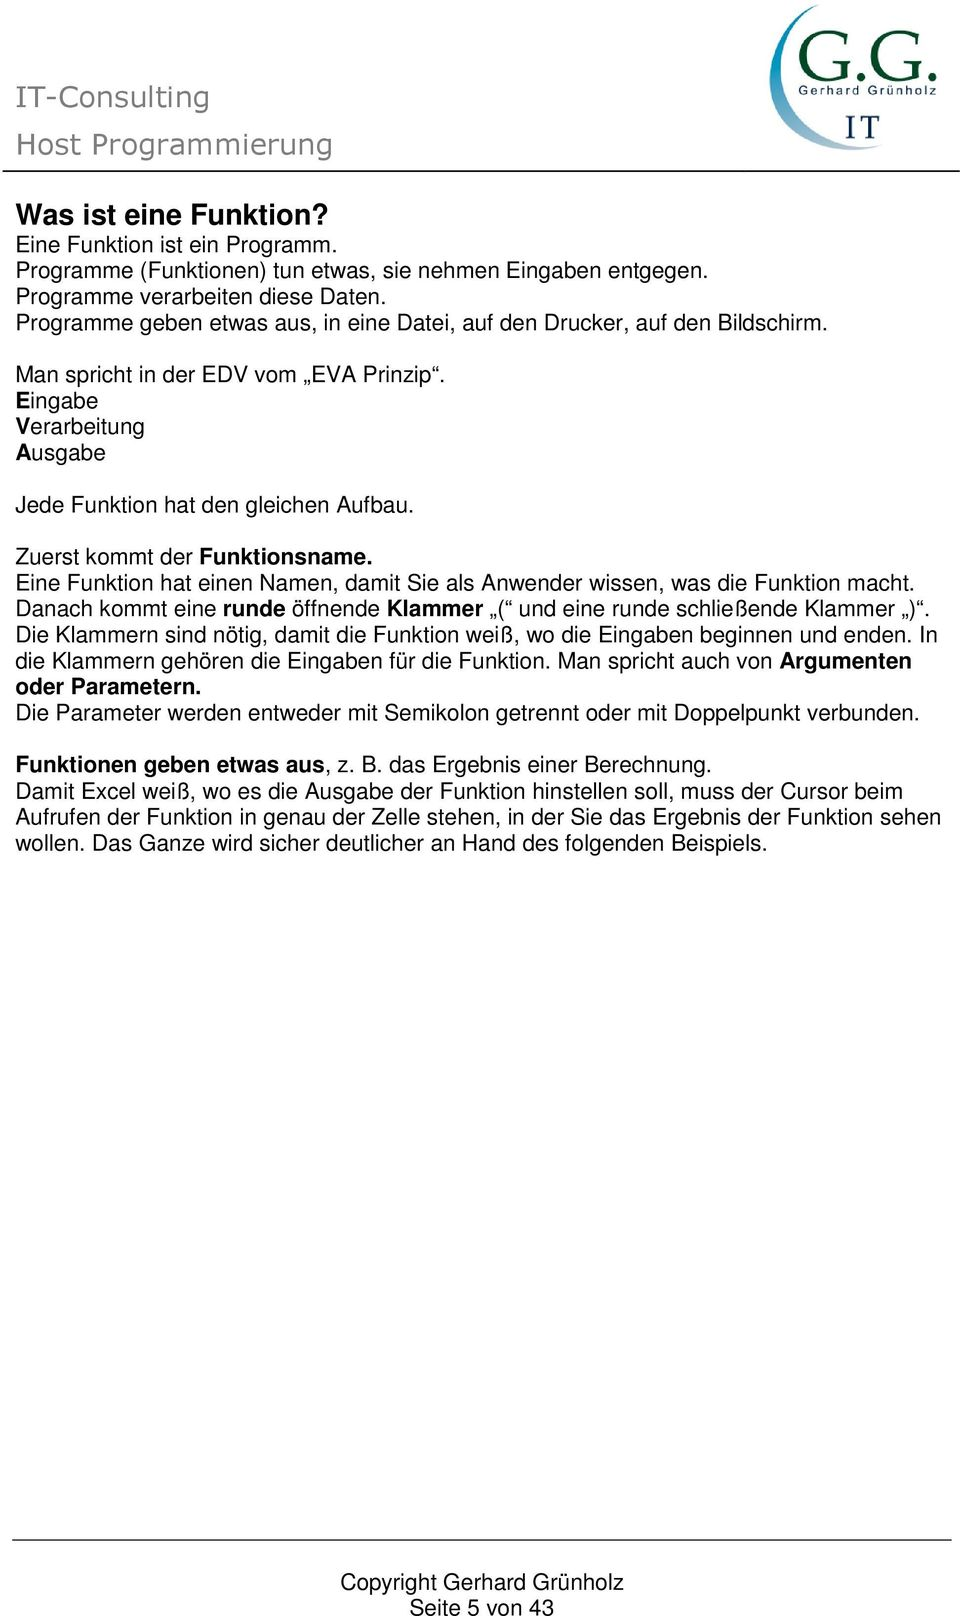 IT-Consulting Host Programmierung - PDF